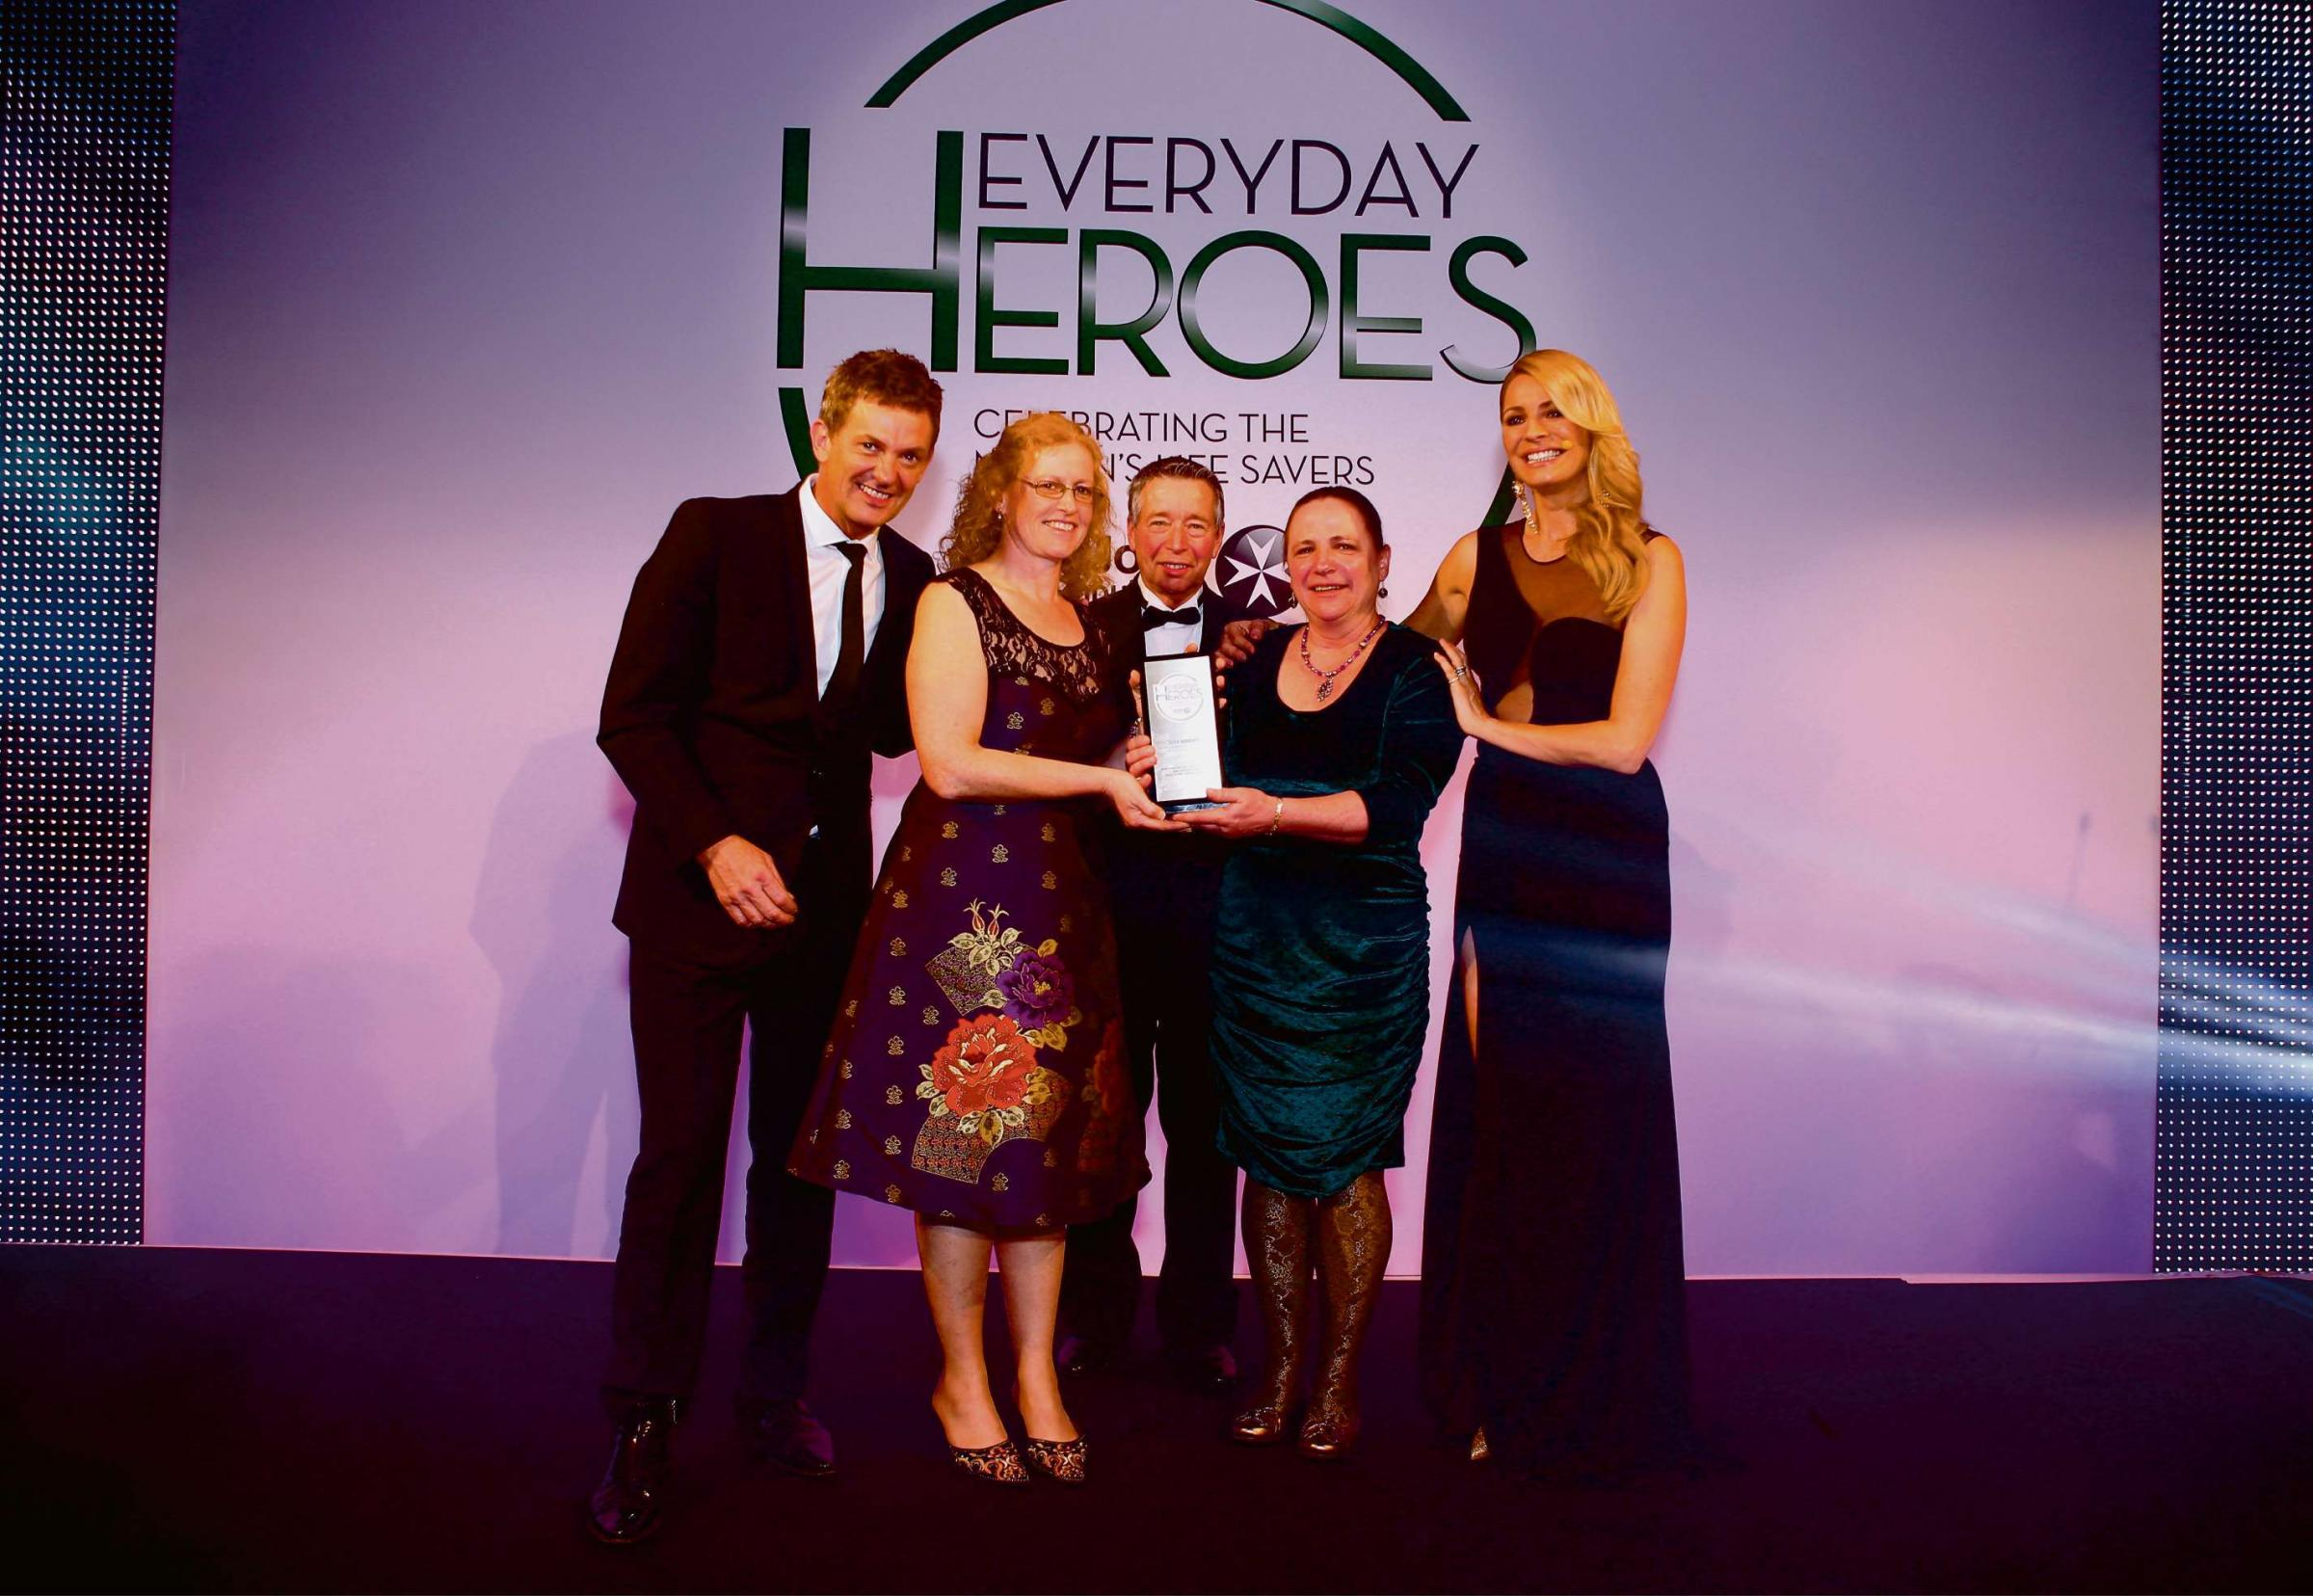 TV presenter Matthew Wright with winner Karen Lawrance, Ward Hamilton Patron, London's Air Ambulance and Senior Vice President, Zoll Medical Corporation, winner Diane Fullerton and TV presenter Tess Daly.